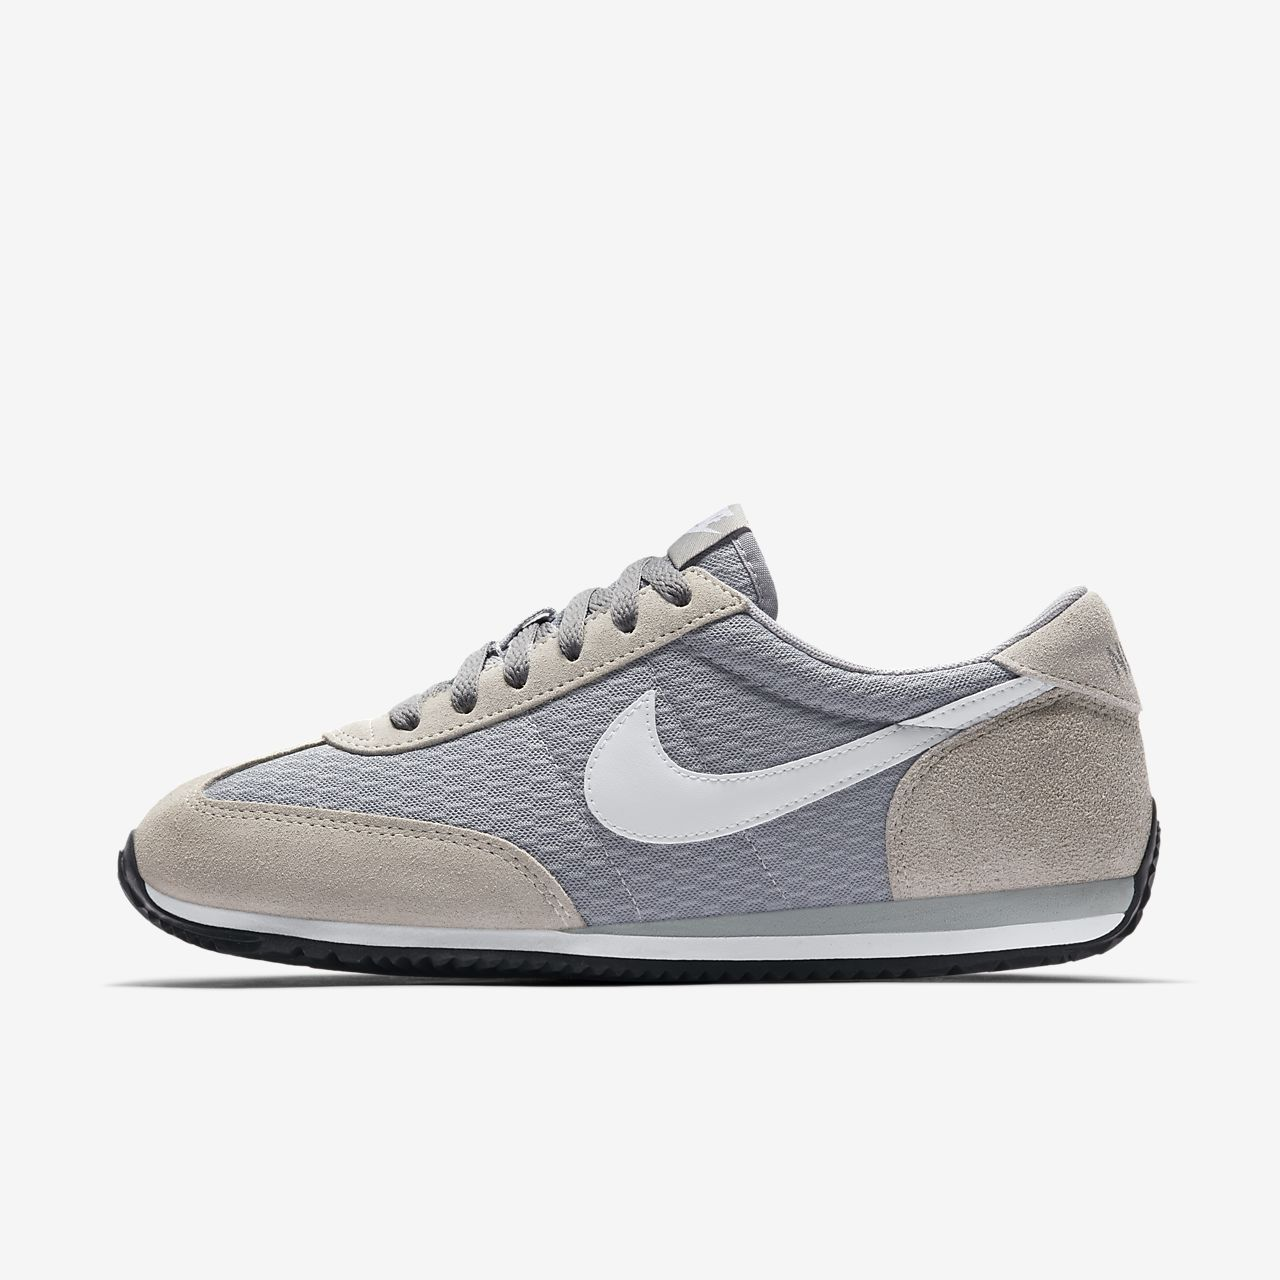 Low Resolution Nike Oceania Textile Women's Shoe Nike Oceania Textile  Women's Shoe